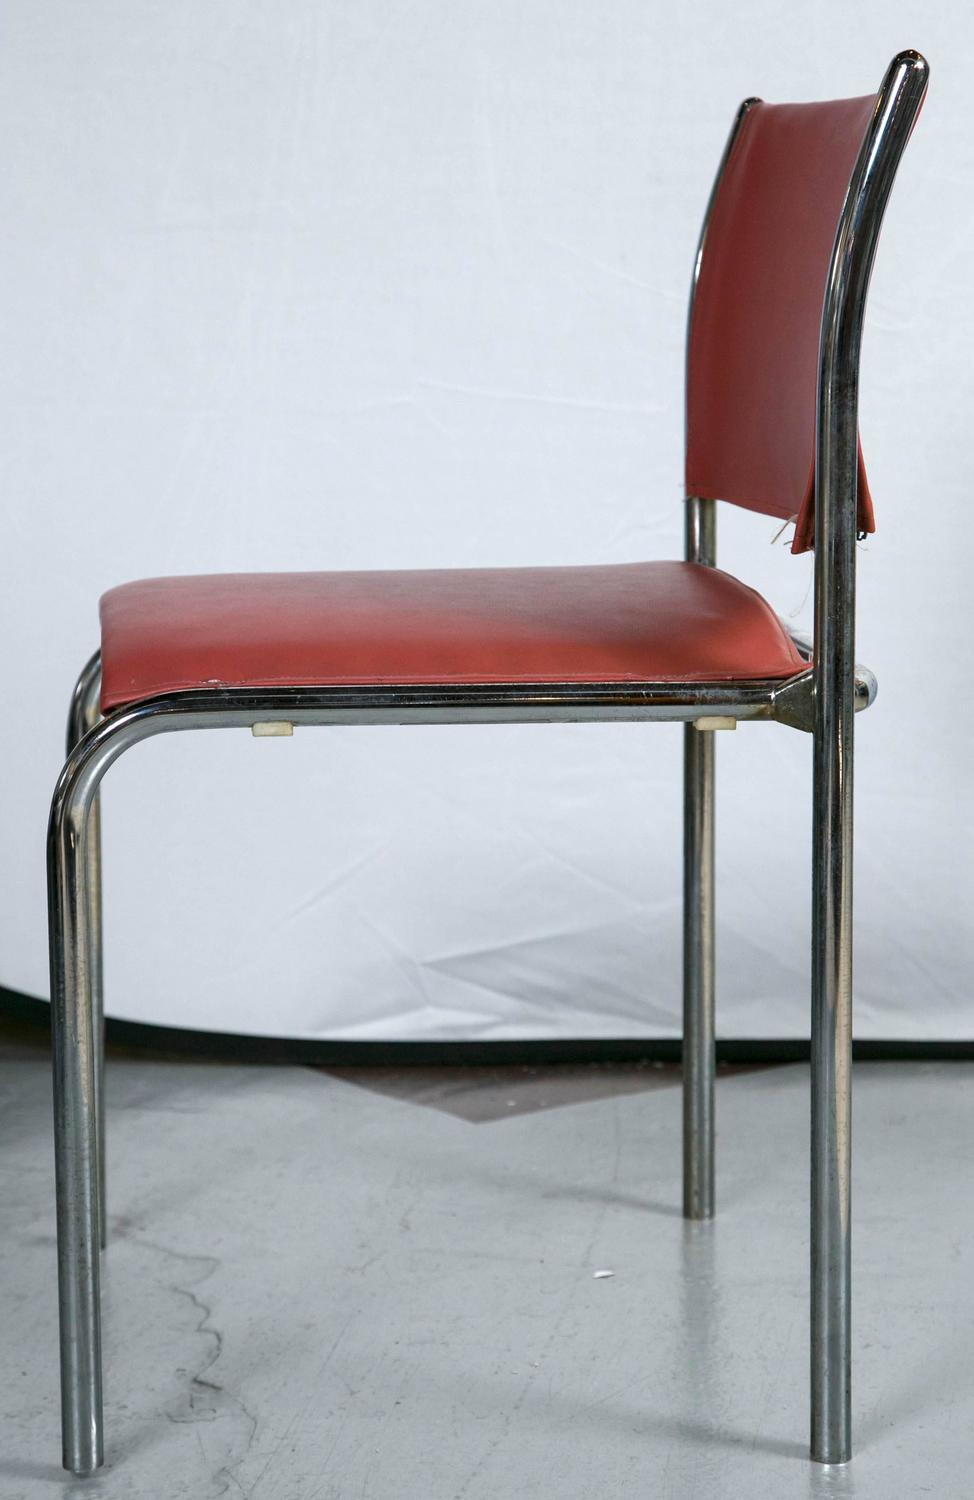 Set Of Ten Thonet Chrome And Leather Side Chairs Style Of Mies Van Der Rohe A